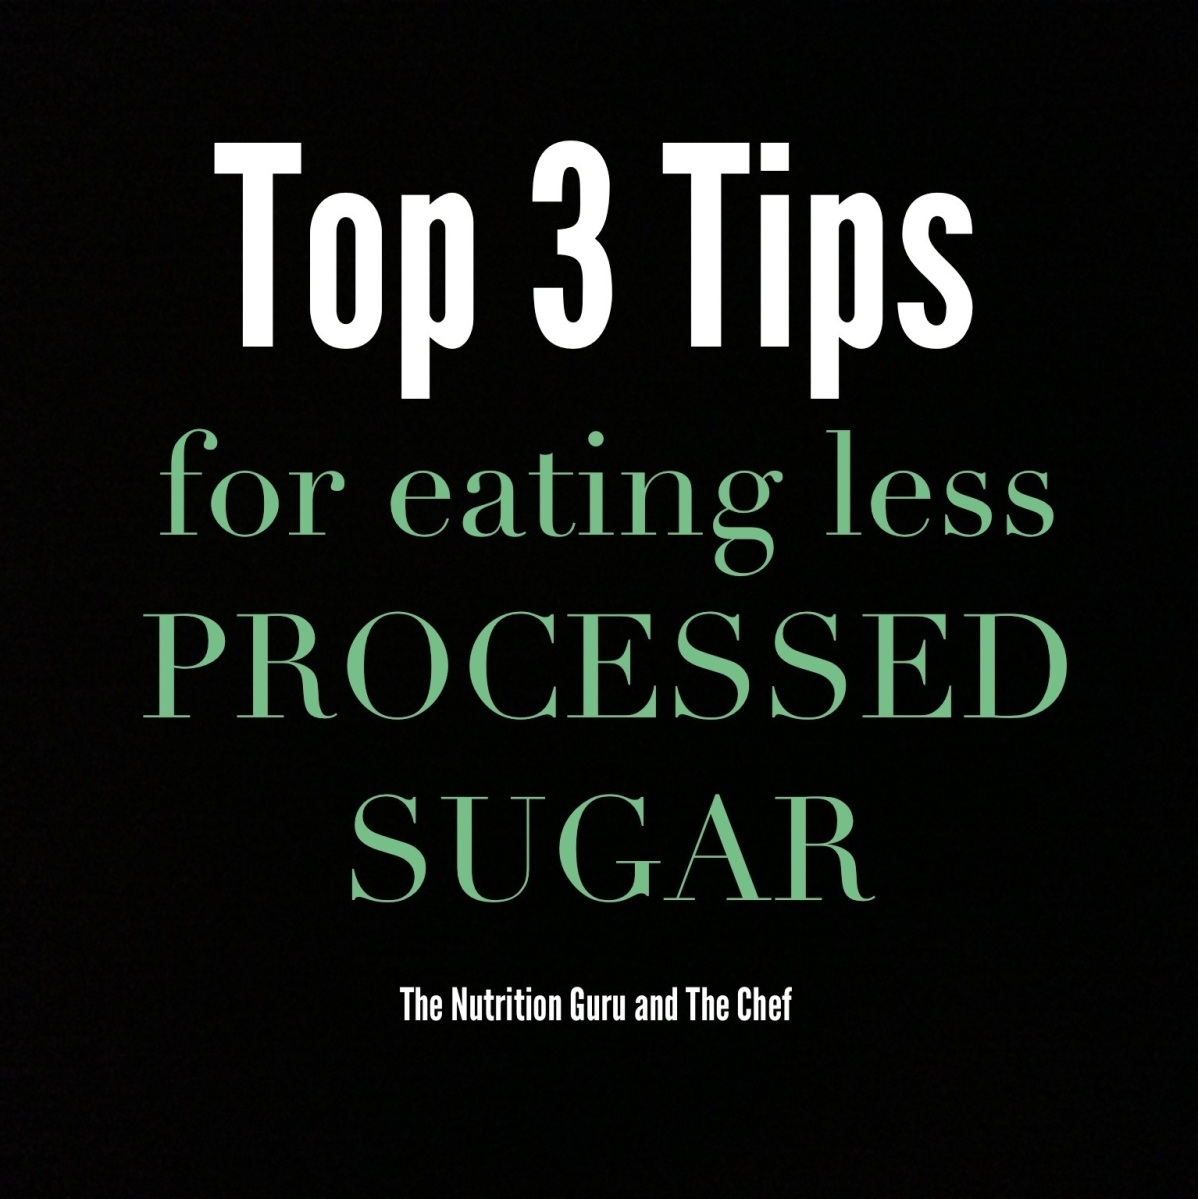 Top 3 Tips for Eating Less Processed Sugar